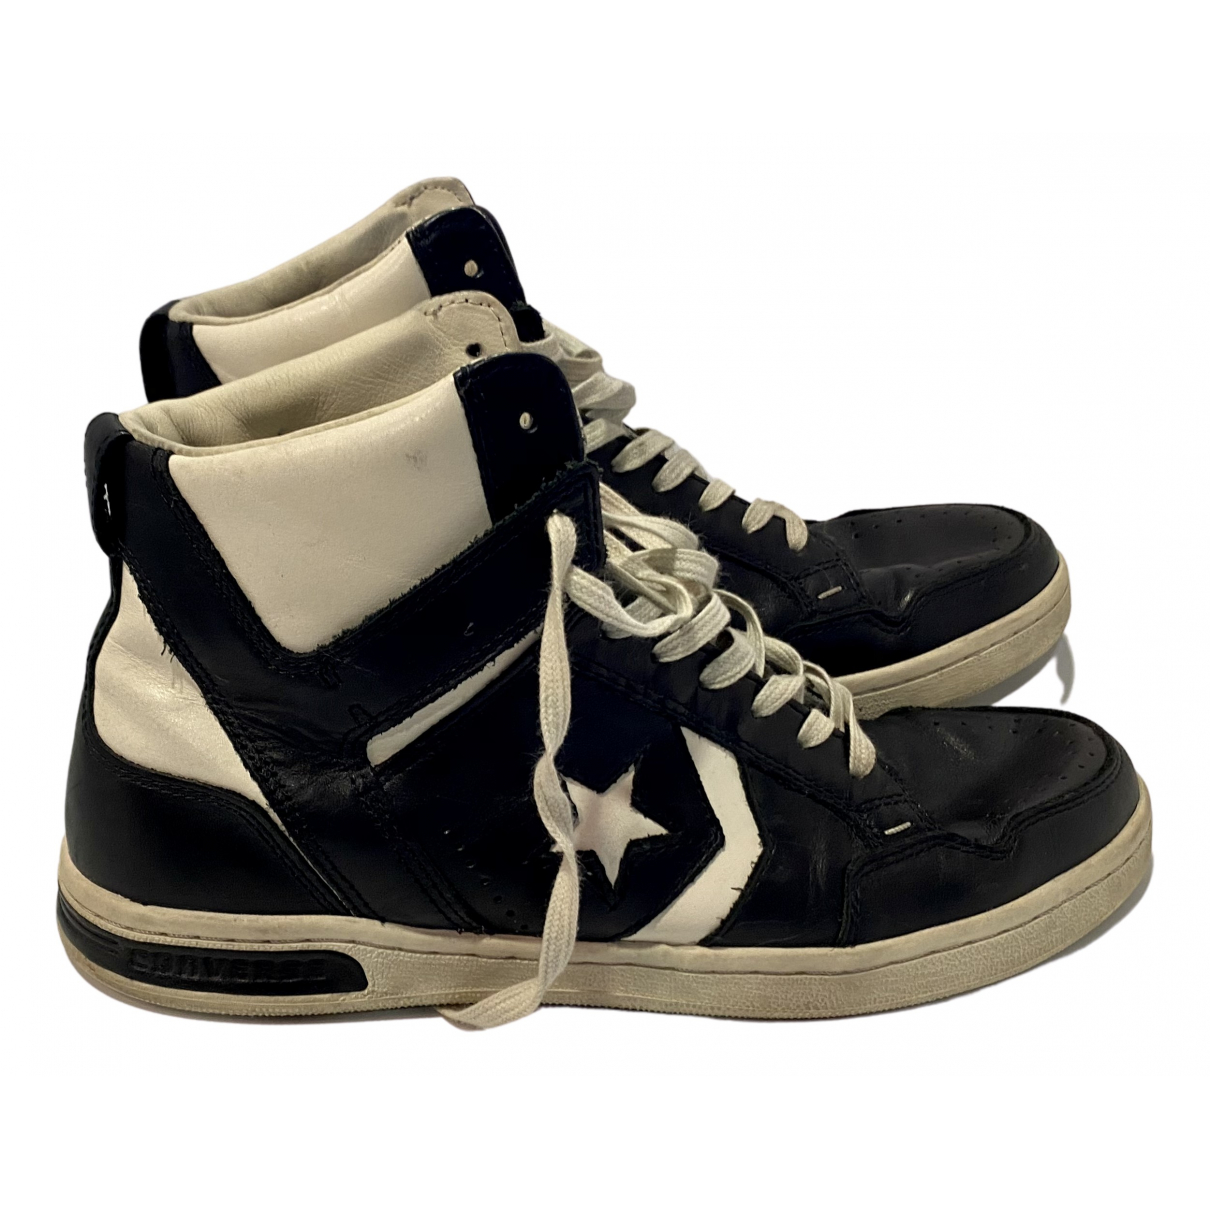 Converse N Black Leather Trainers for Men 44 EU